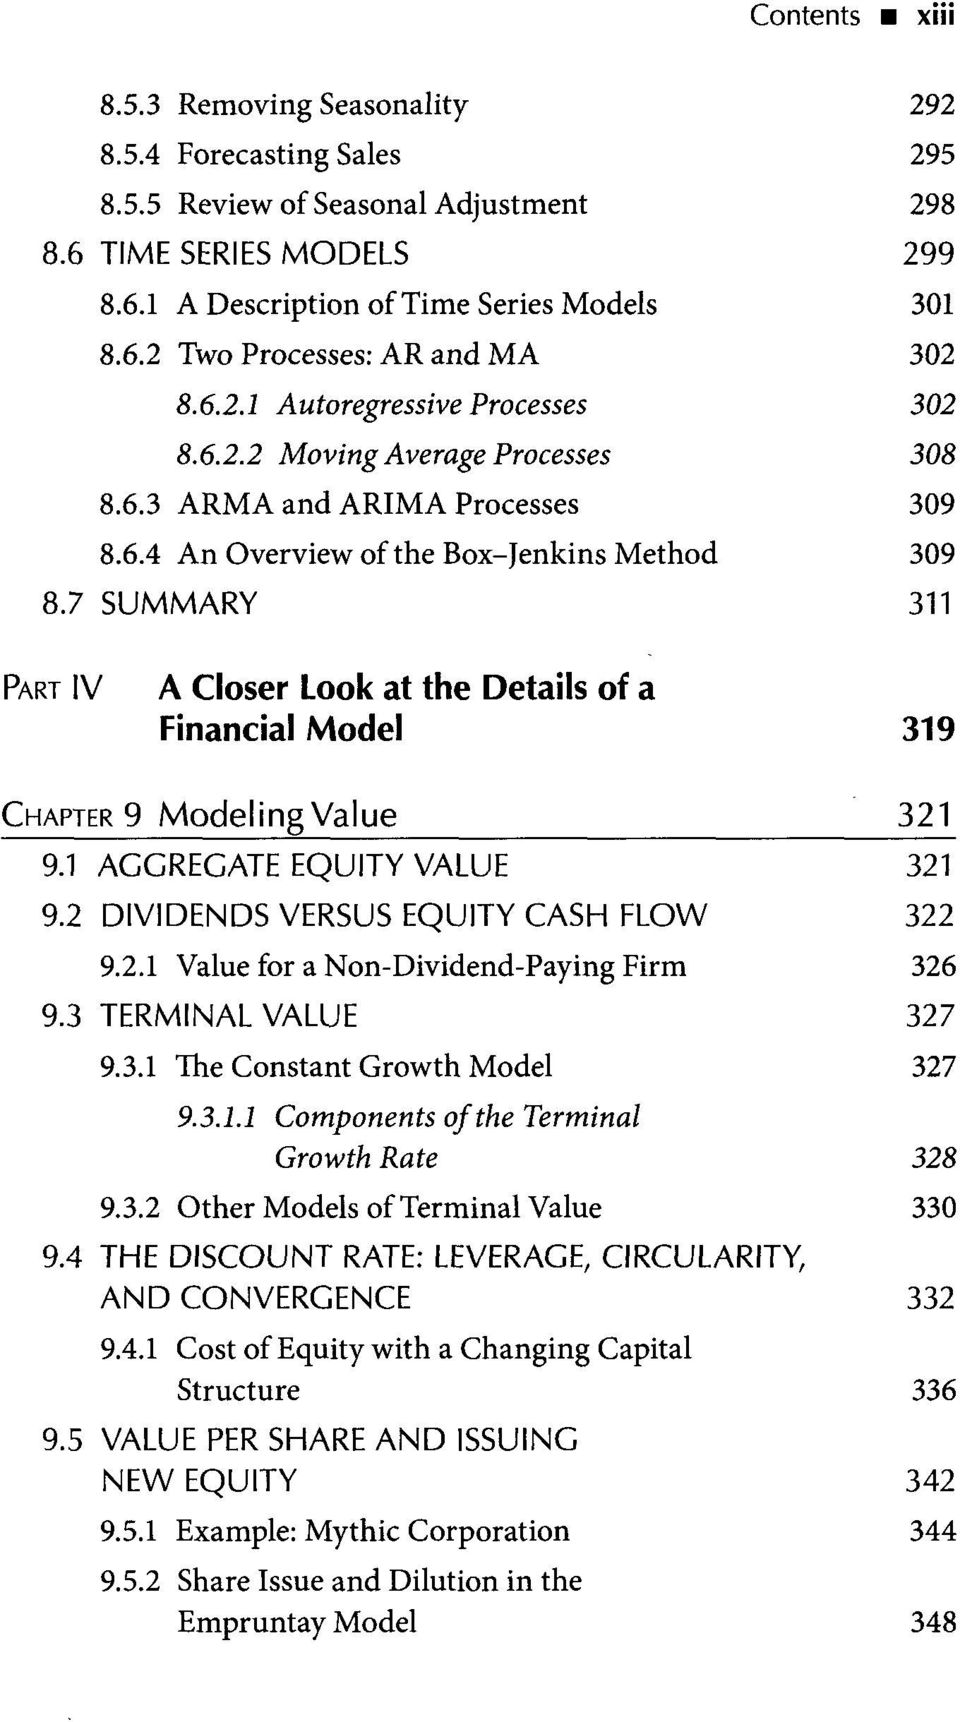 7 SUMMARY 311 PART IV A Closer Look at the Details of a Financial Model 319 CHAPTER 9 Modeling Value 321 9.1 AGGREGATE EQUITY VALUE 321 9.2 DIVIDENDS VERSUS EQUITY CASH FLOW 322 9.2.1 Value for a Non-Dividend-Paying Firm 326 9.